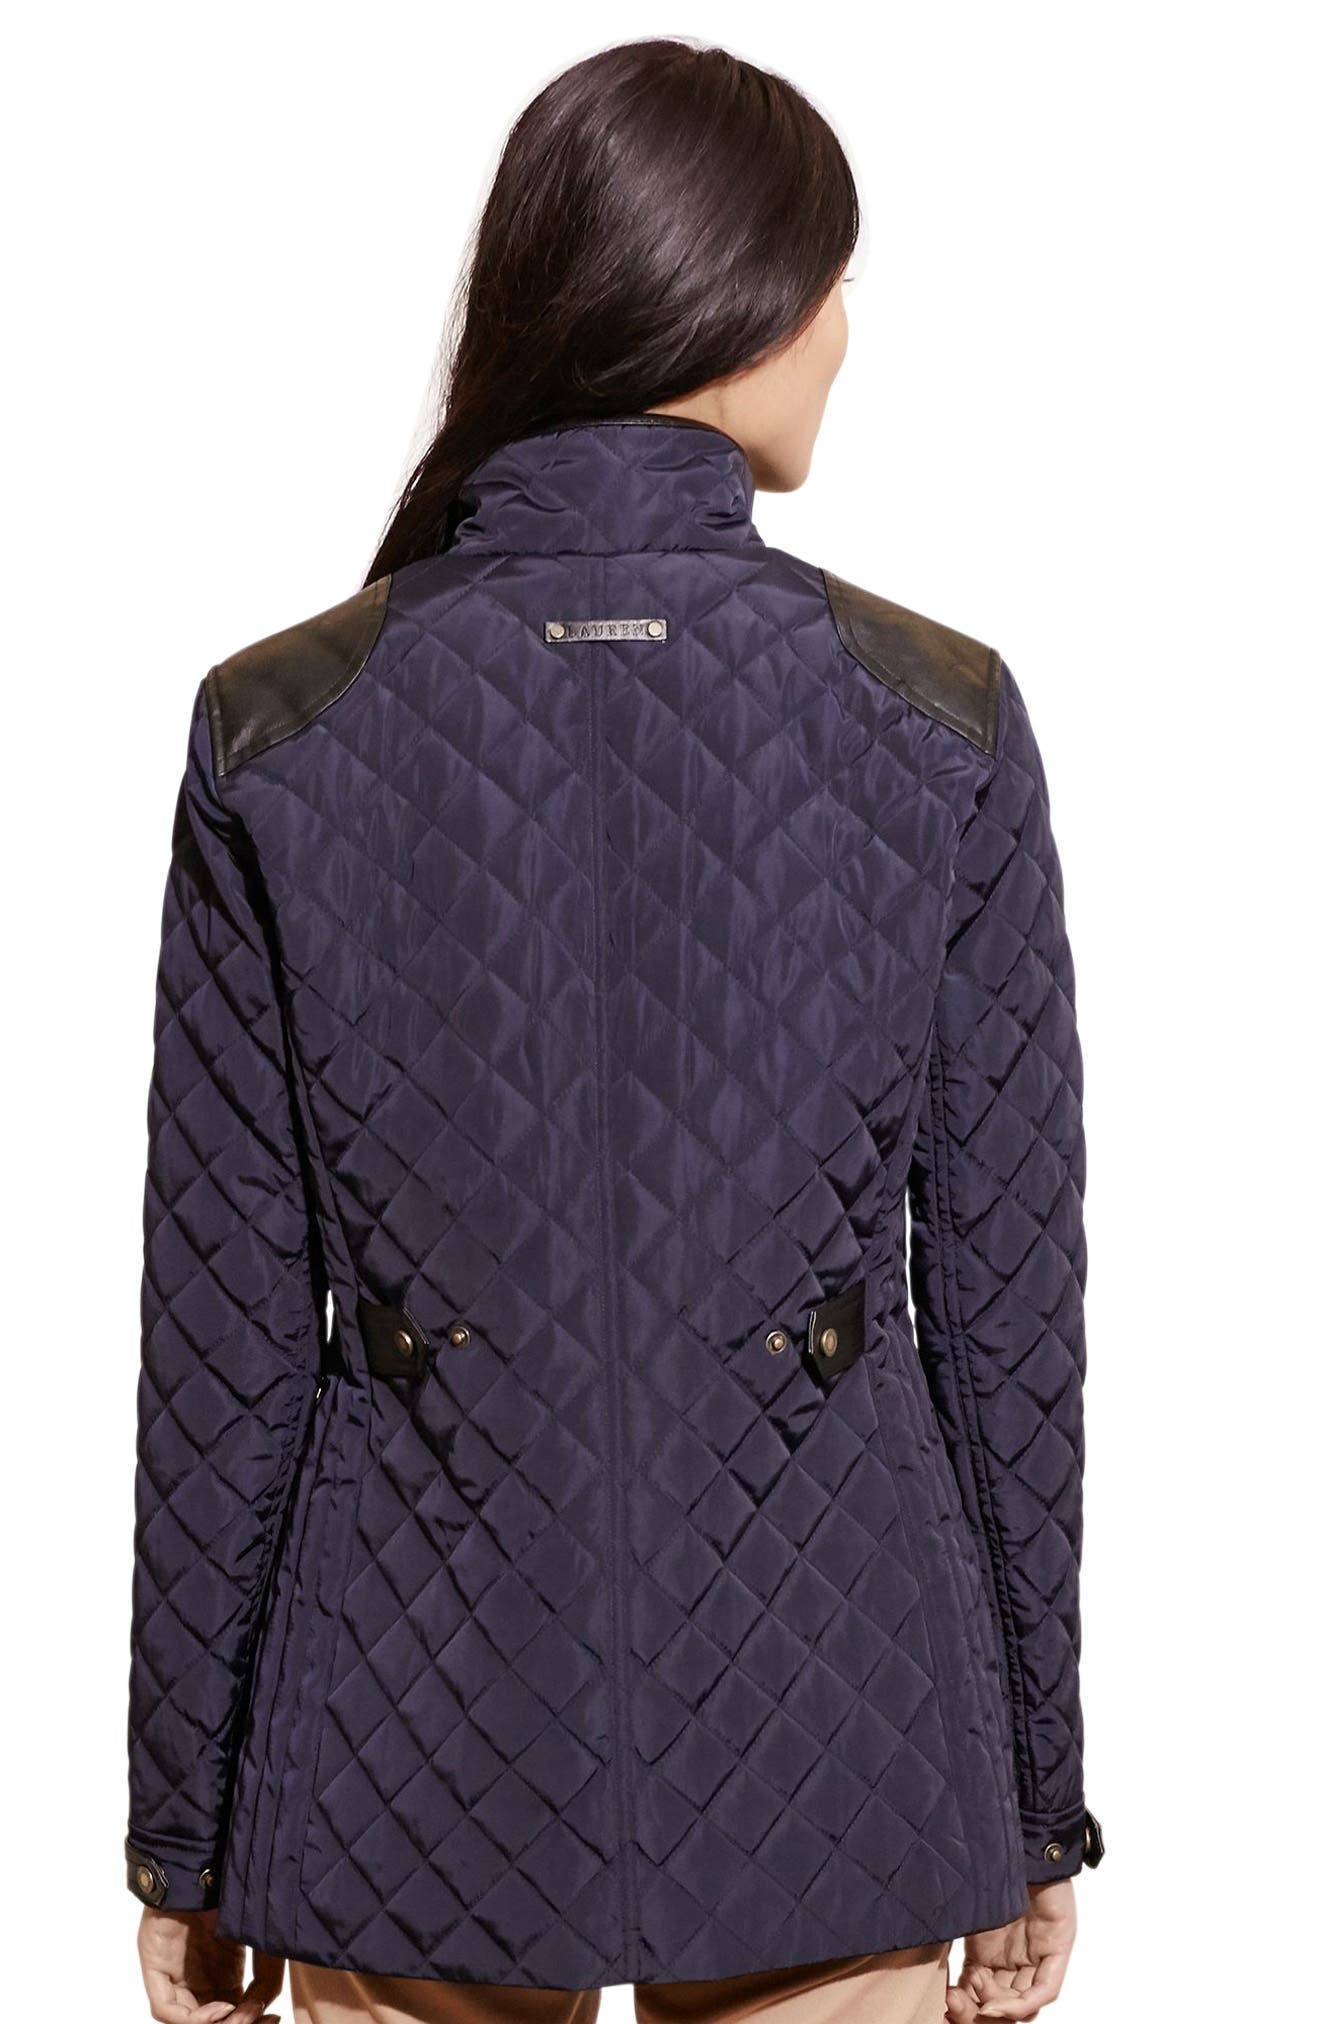 Diamond Quilted Jacket with Faux Leather Trim,                             Alternate thumbnail 3, color,                             Dark Navy